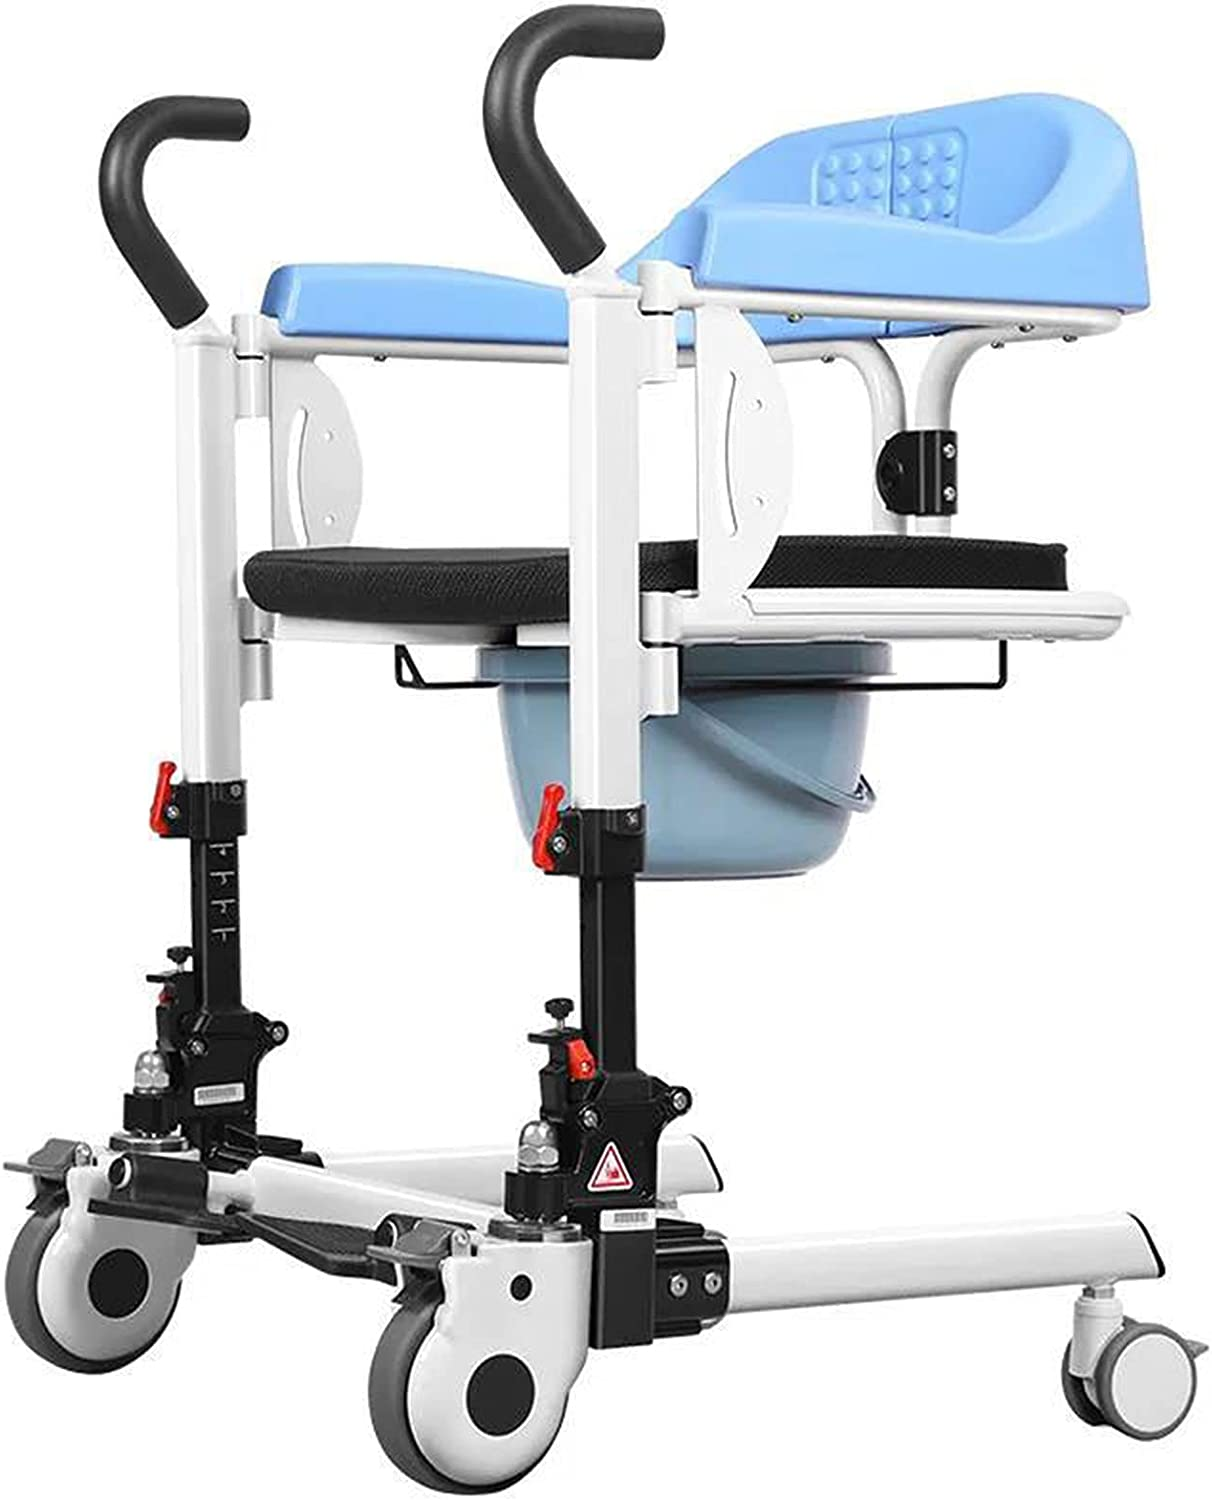 Gycdwjh Patient Body Transfer Topics Max 47% OFF on TV Medical w Equipment Lift